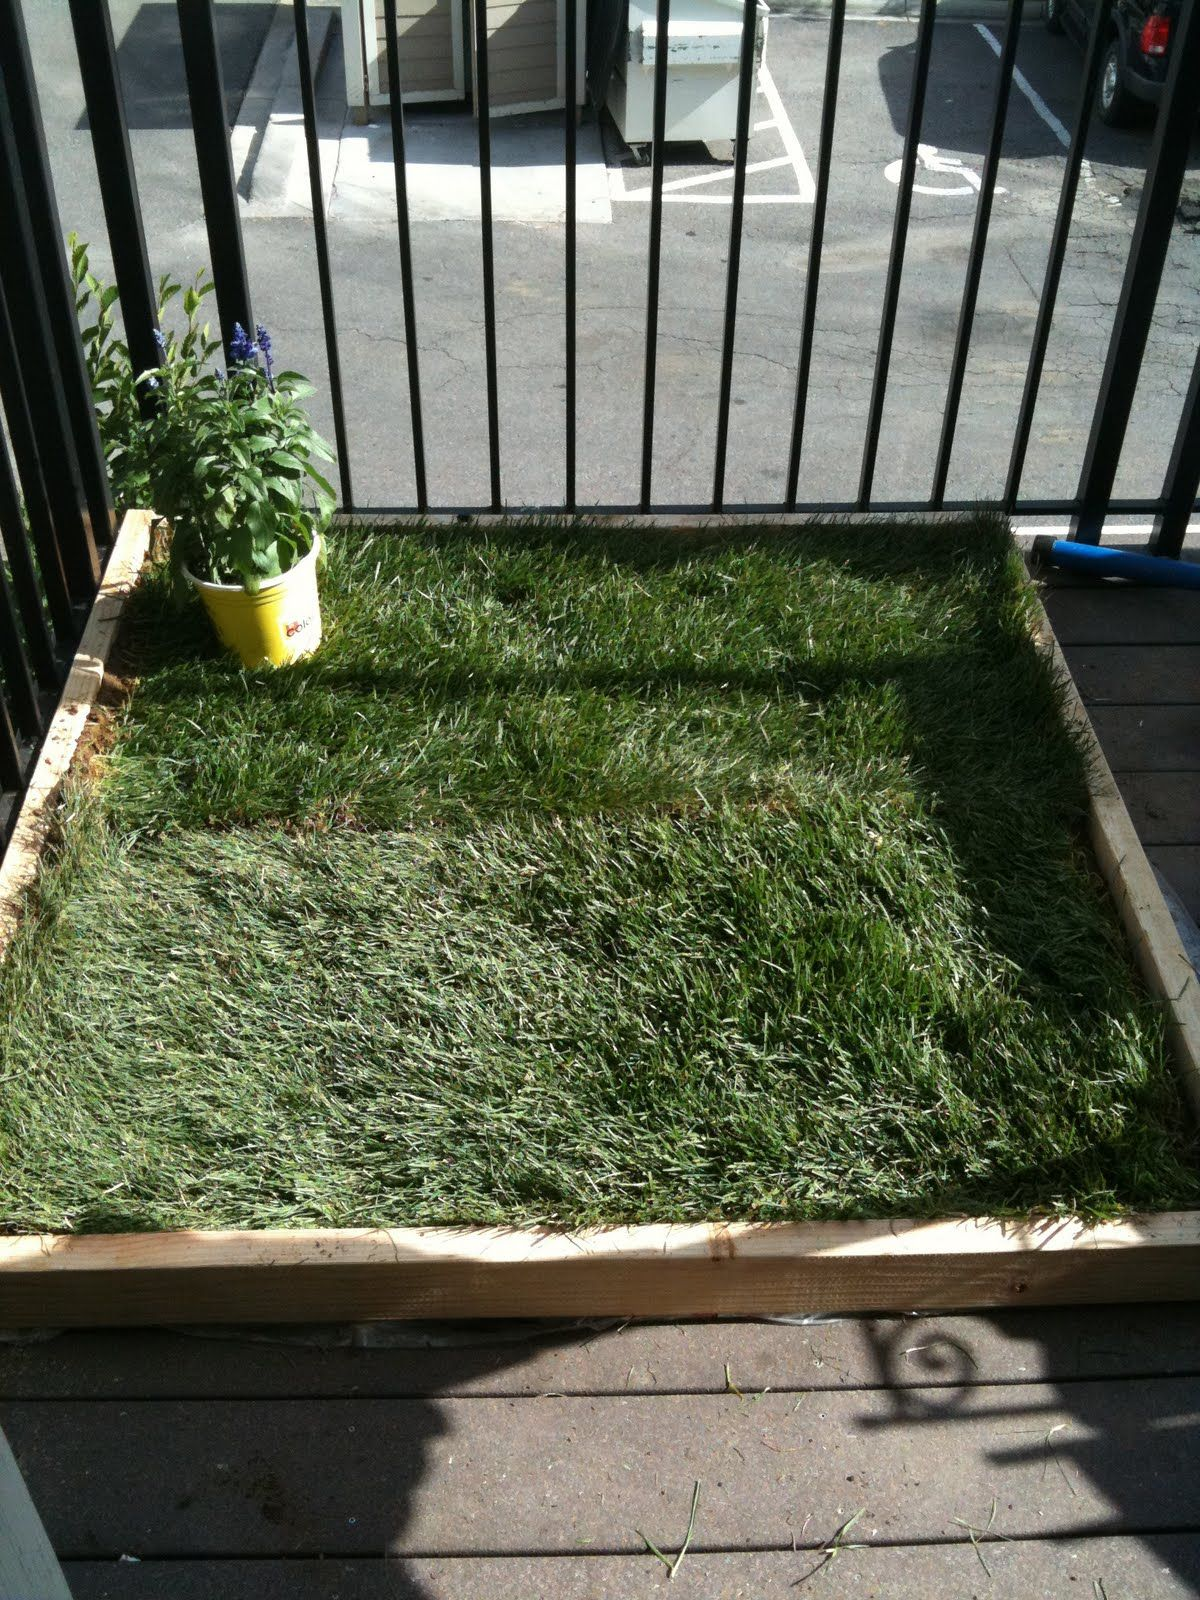 Great DIY Dog Potty Patch For Patio. I Might Do This So I Donu0027t